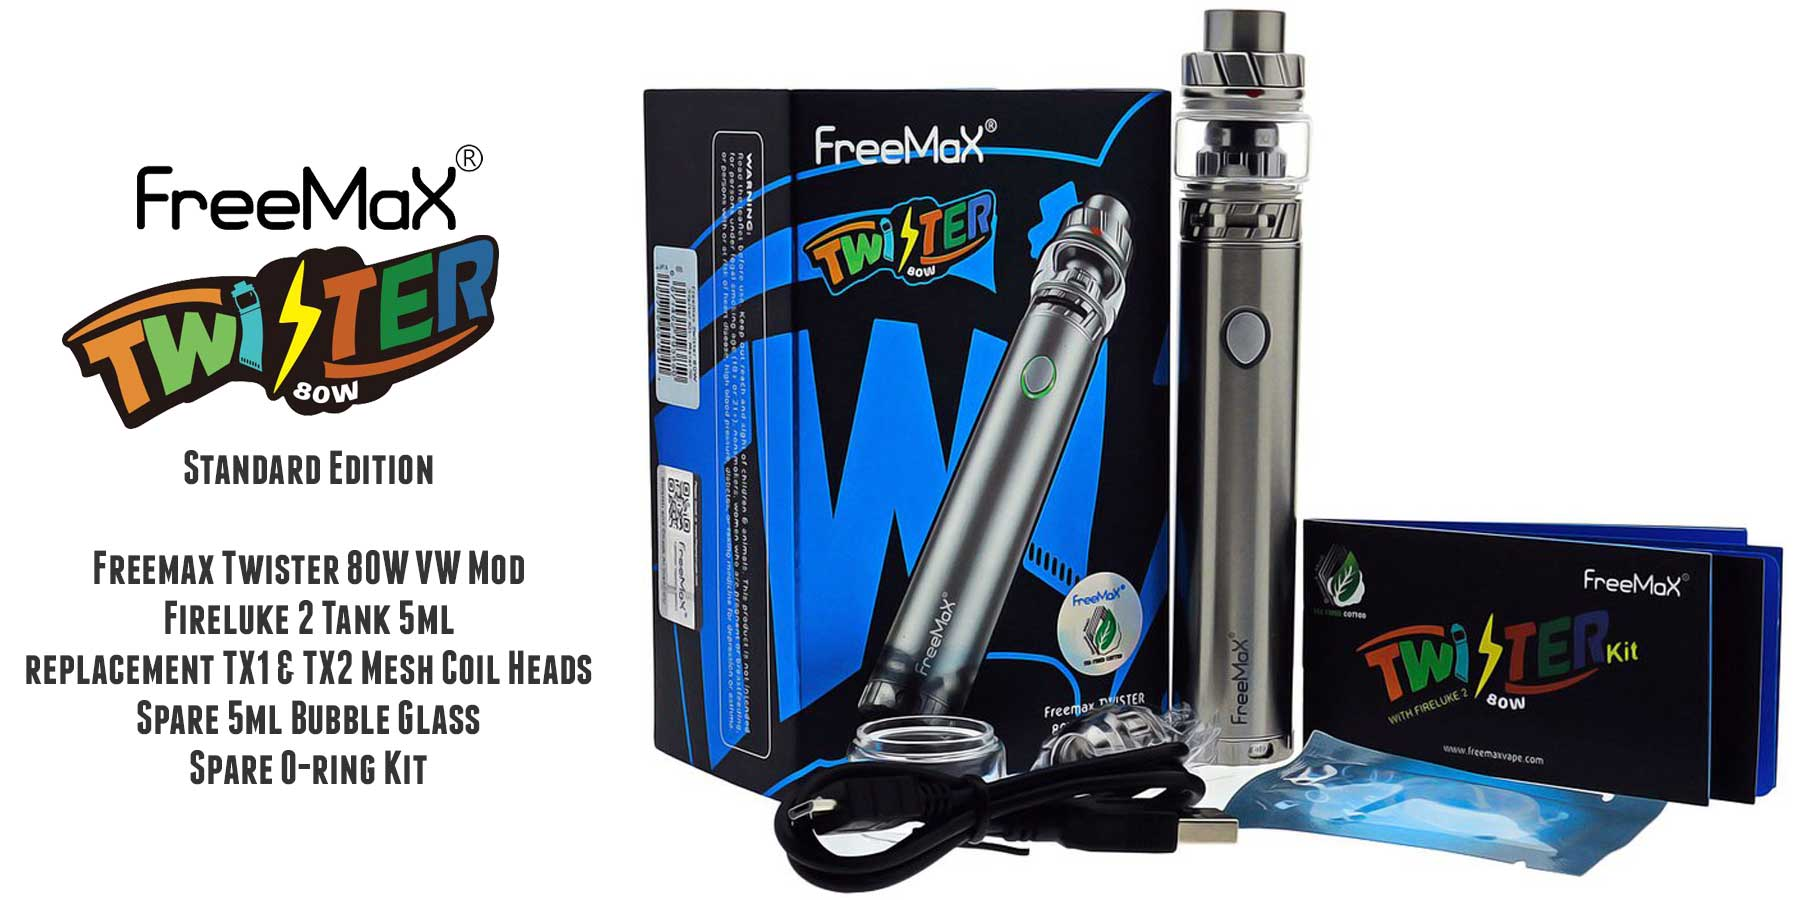 Newest TX1/TX2/TNX2/TX3/TX4 Mesh Coil of the Fireluke 2 are a perfect match with the Twister 80W Mod with 5-80W Variable Wattage Function, as the Fireluke 2 is able to reach a balance of the vapour and flavour at the range of 40-90 watts.